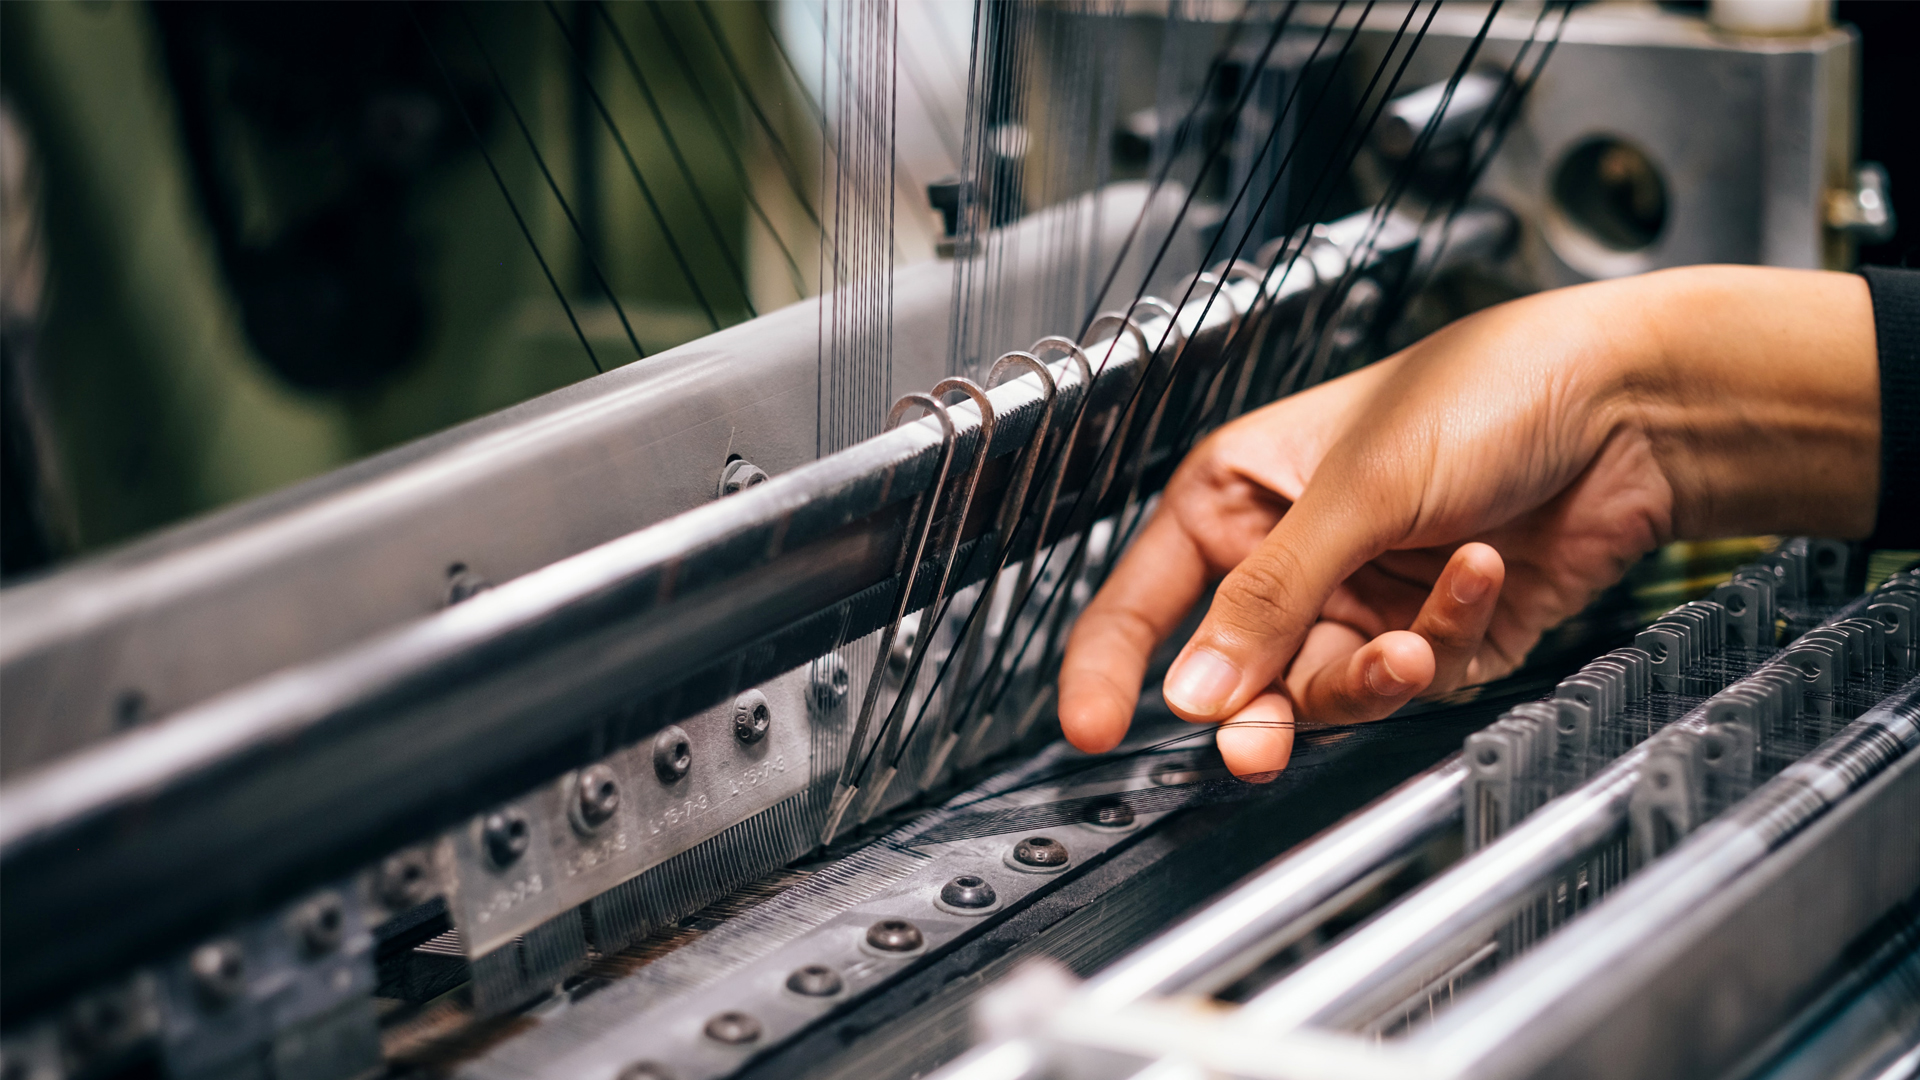 India's Exports Likely To Get A Boost From New Textile Parks